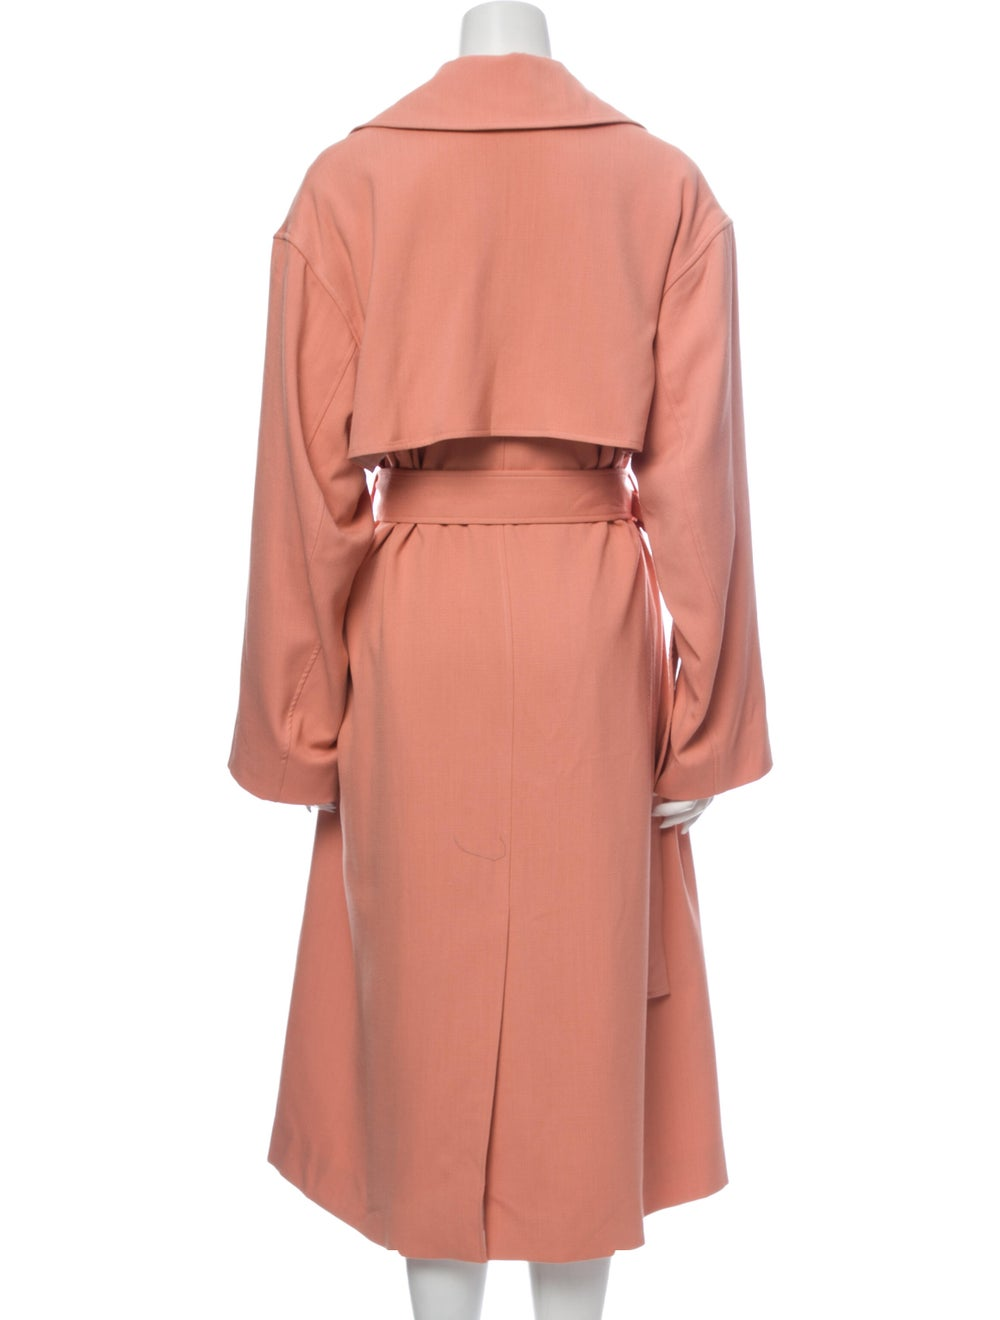 Michelle Waugh Trench Coat Pink - image 3